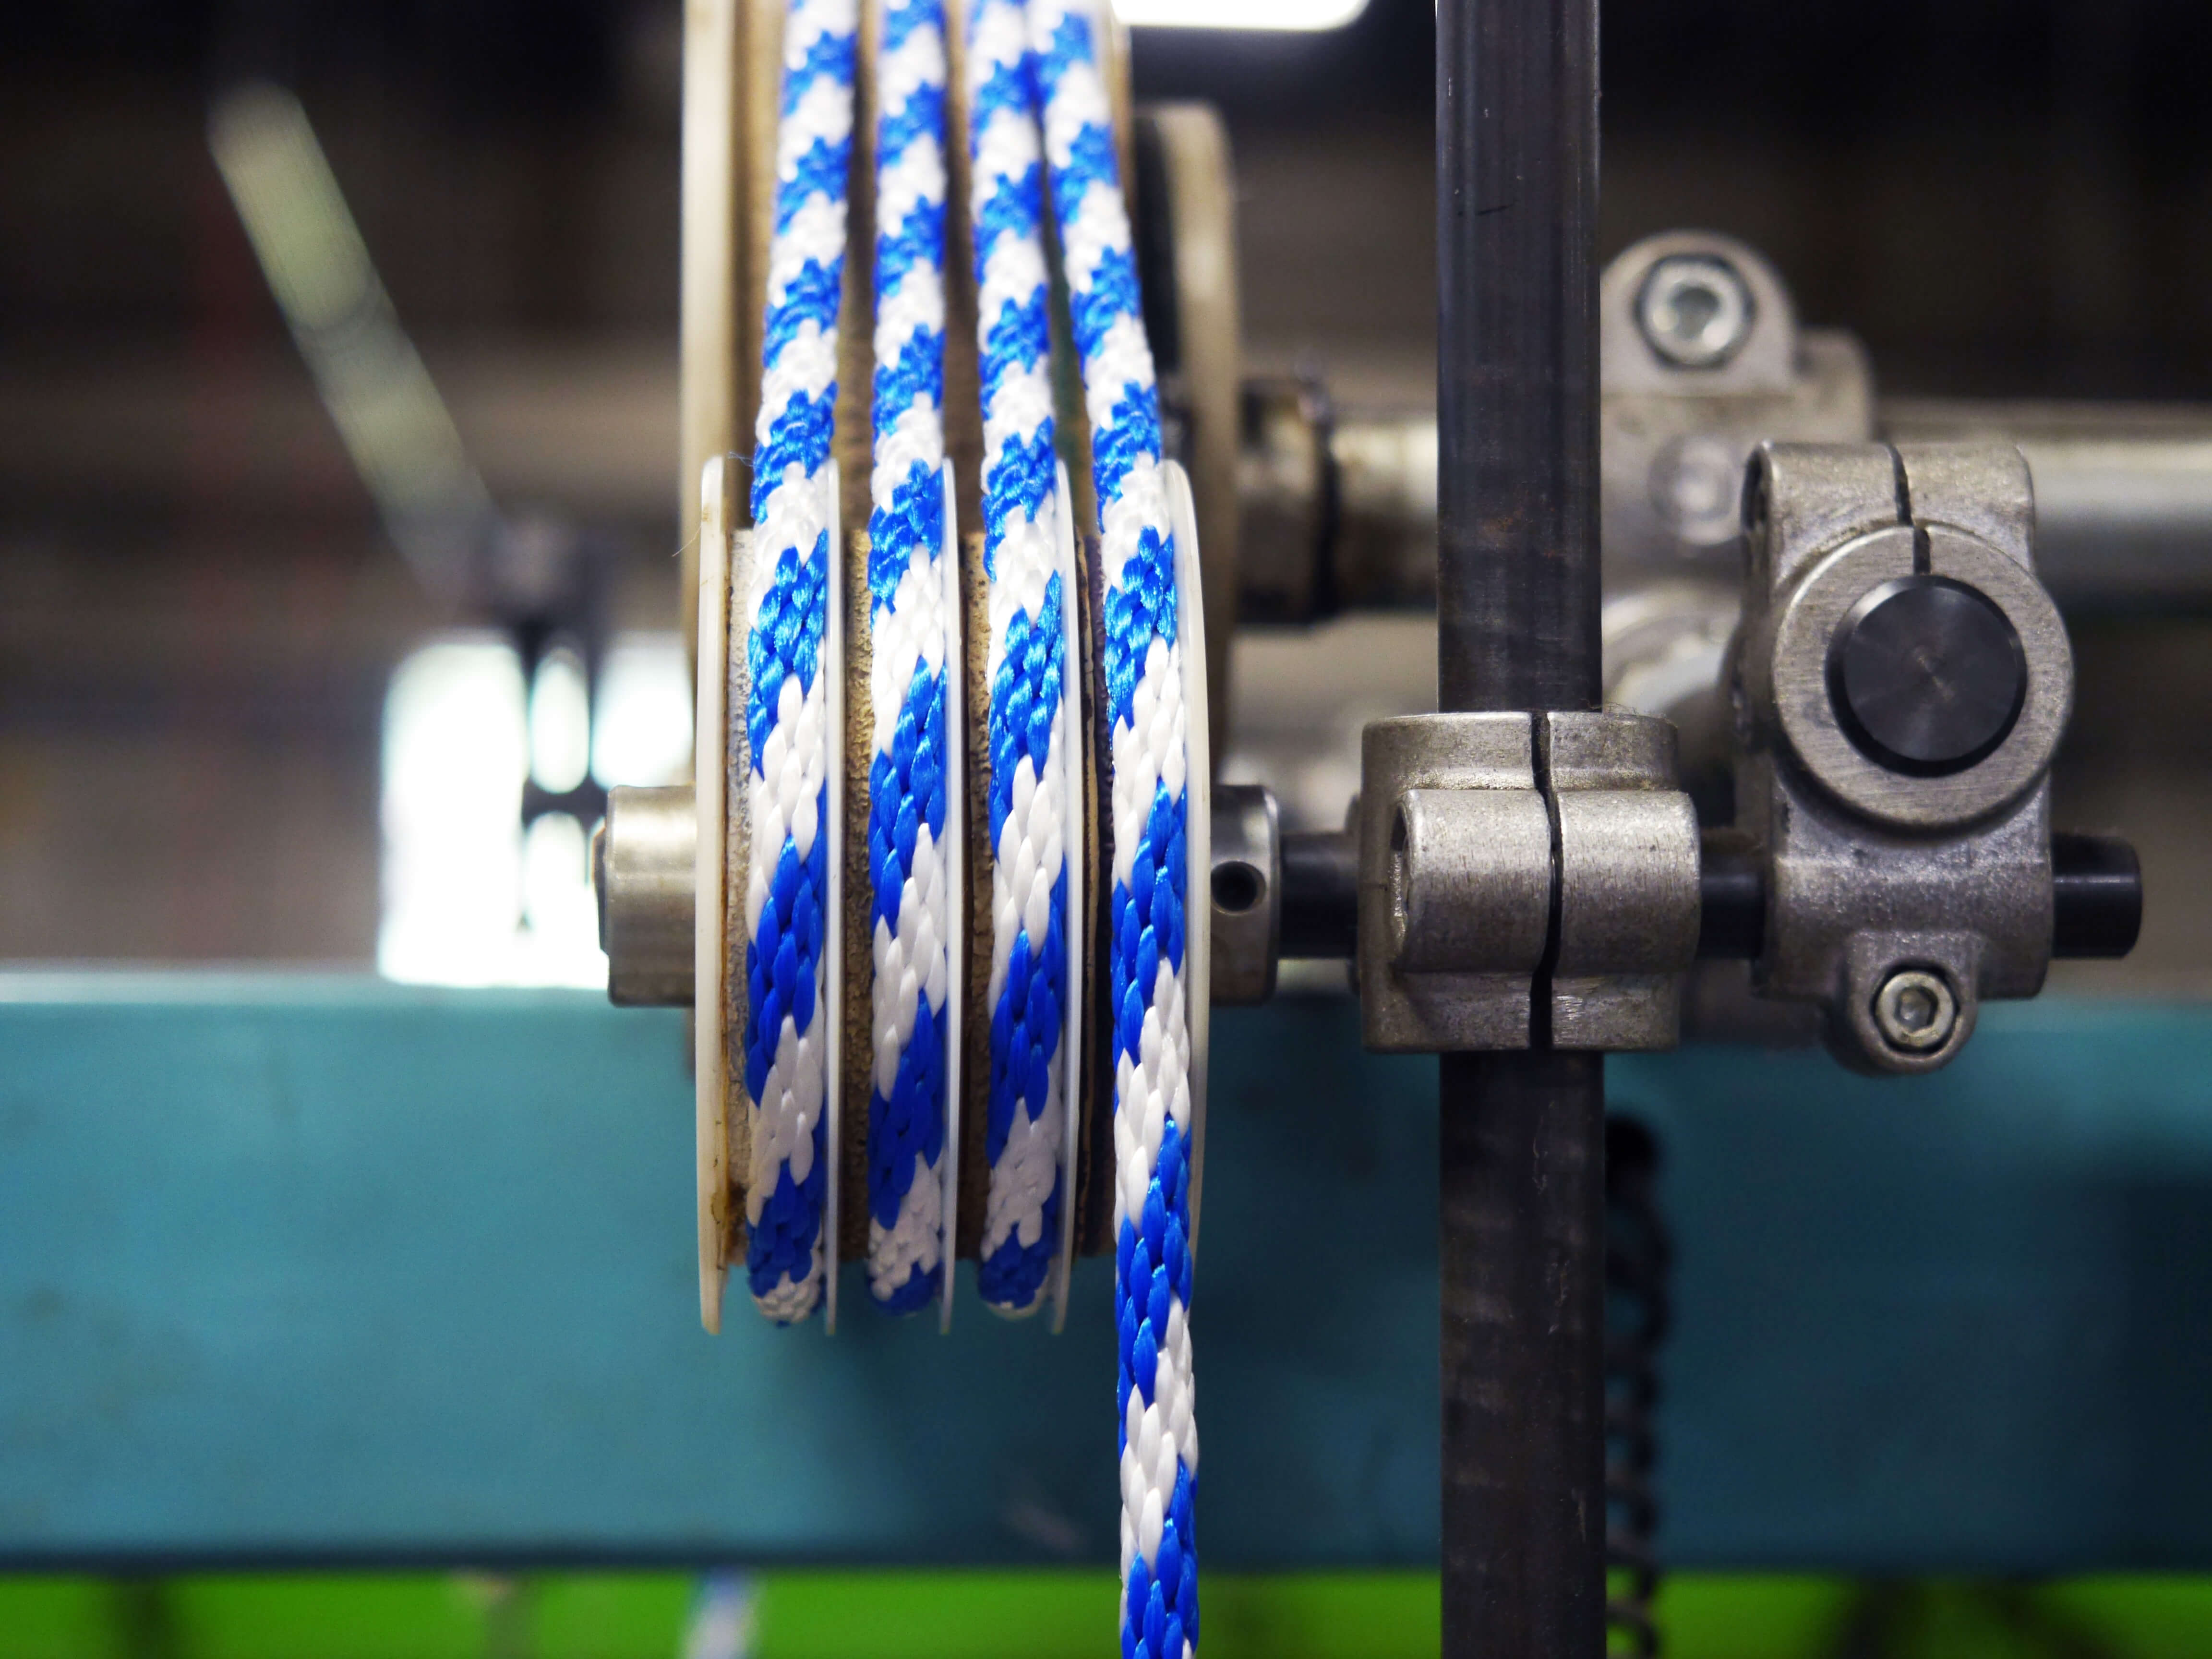 Closeup of rope on machinery